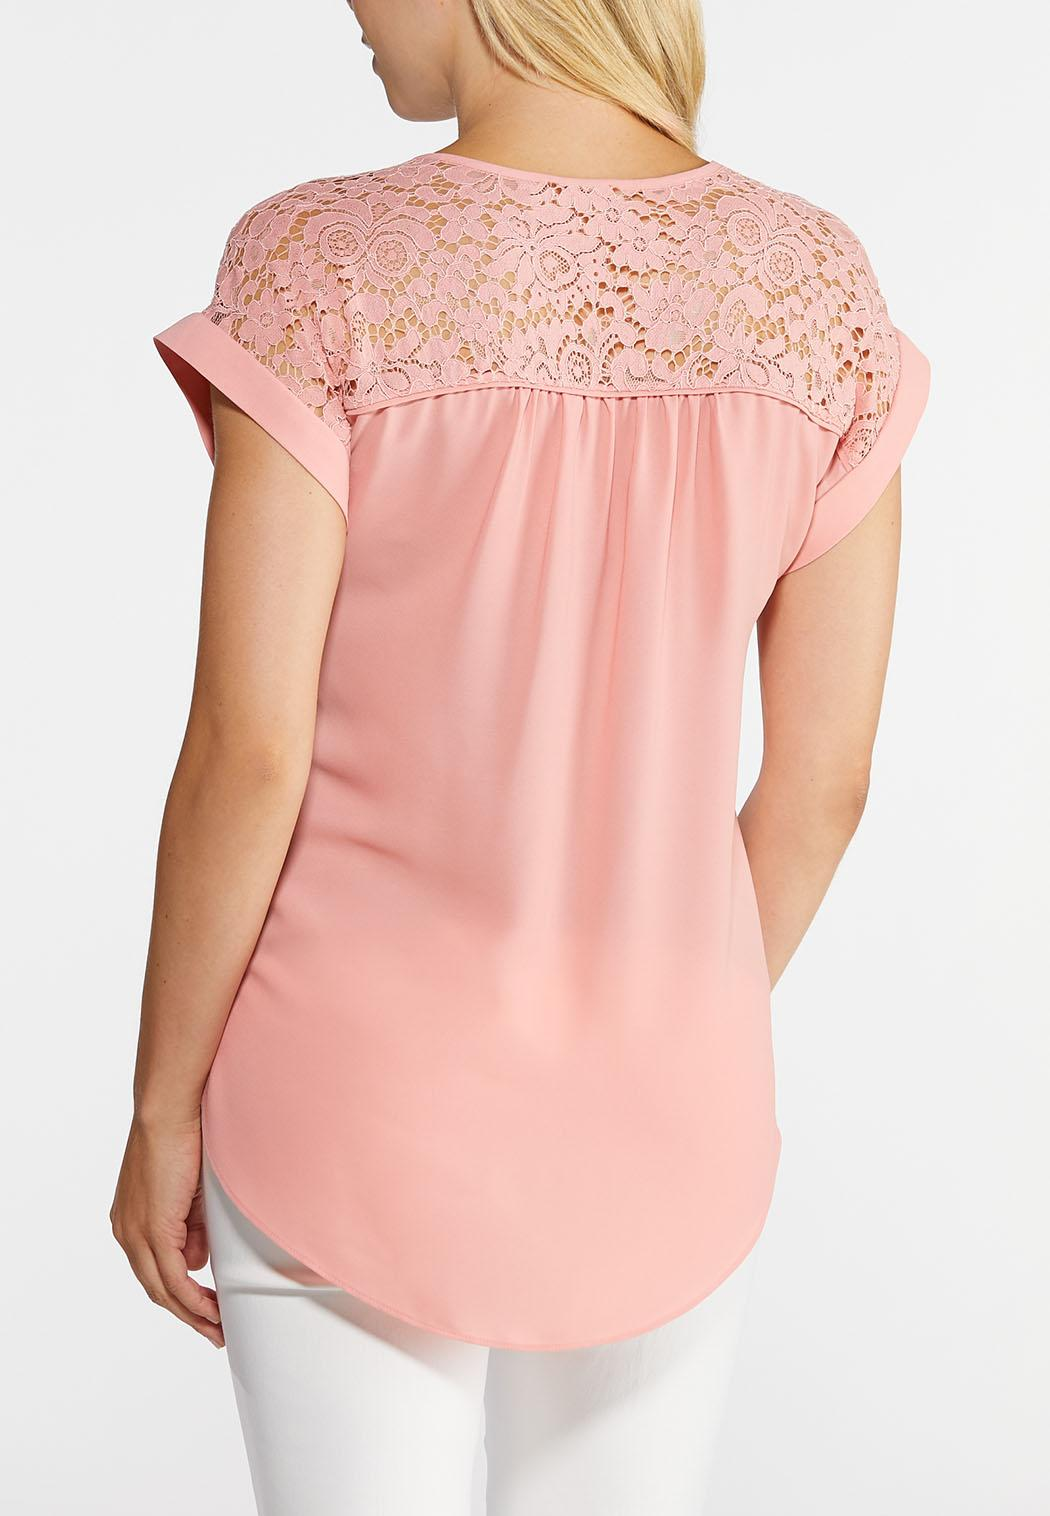 Piped Lace Top (Item #43955616)